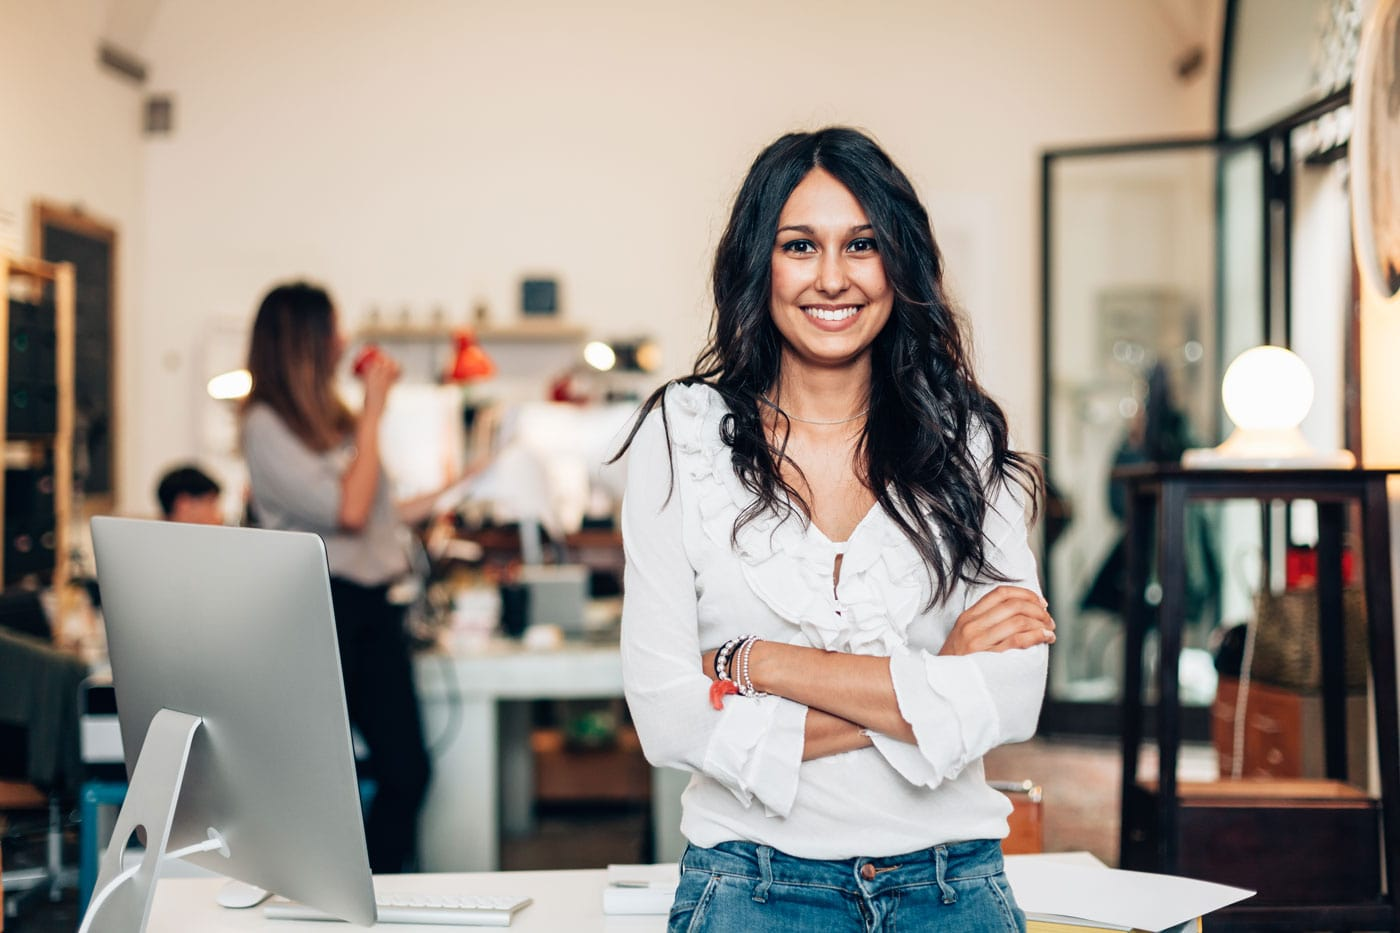 Photo of woman at desk